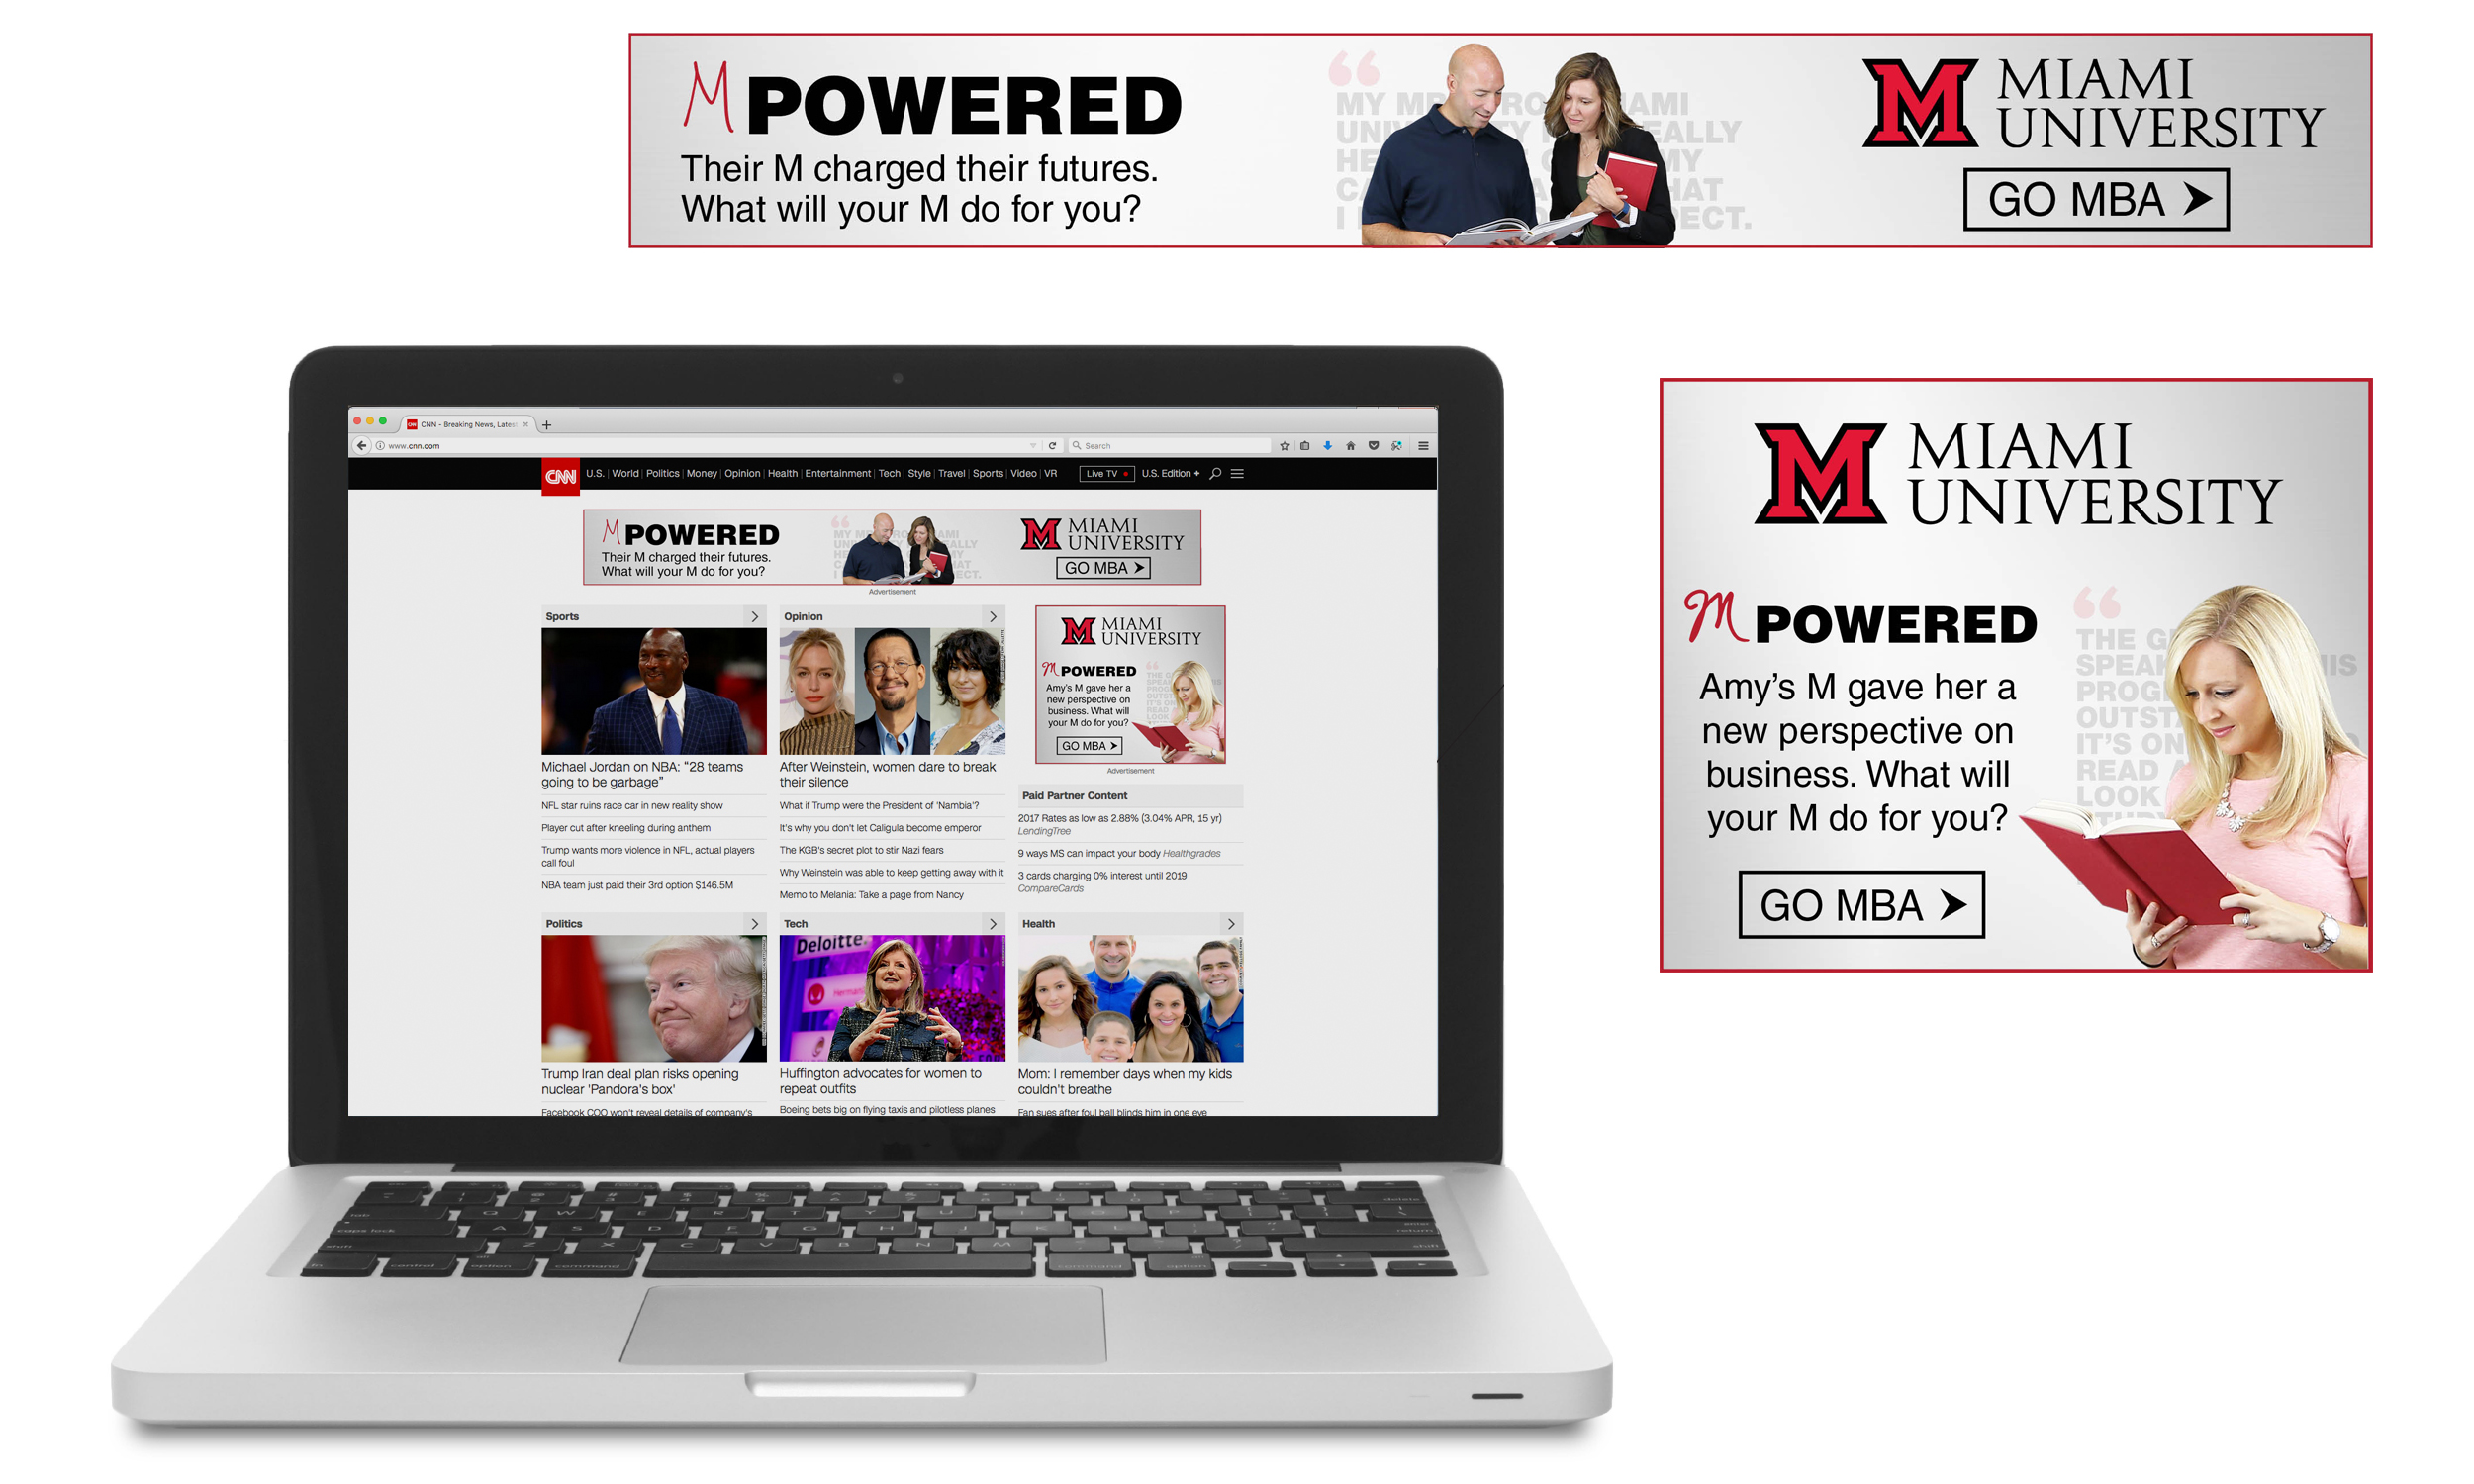 miamiu_digital_display.jpg